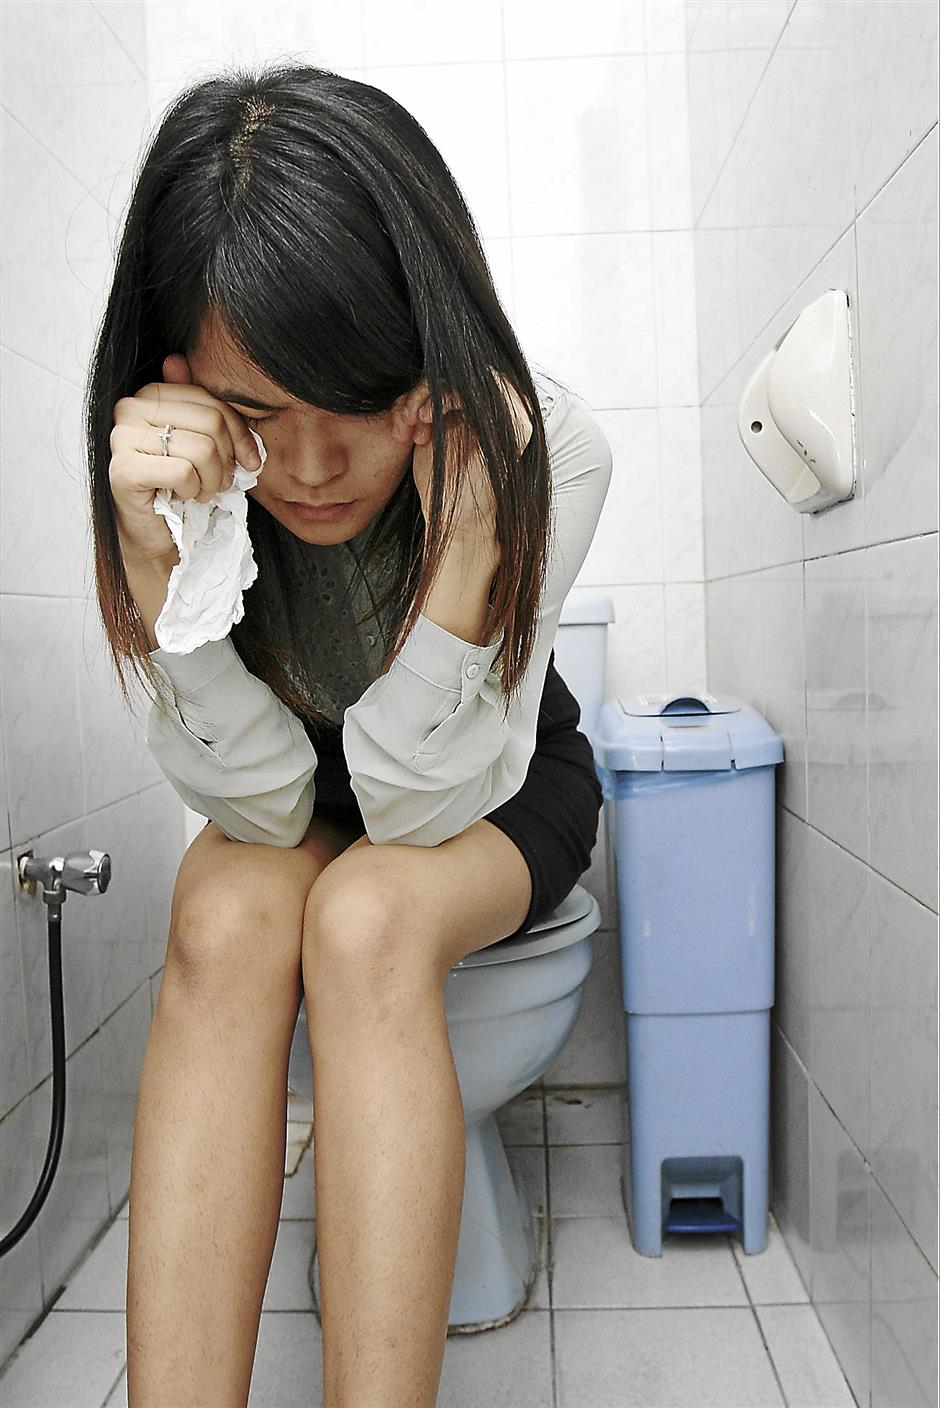 Victims of workplace bullying could suffer depression, anxiety and other stress-related health problems.